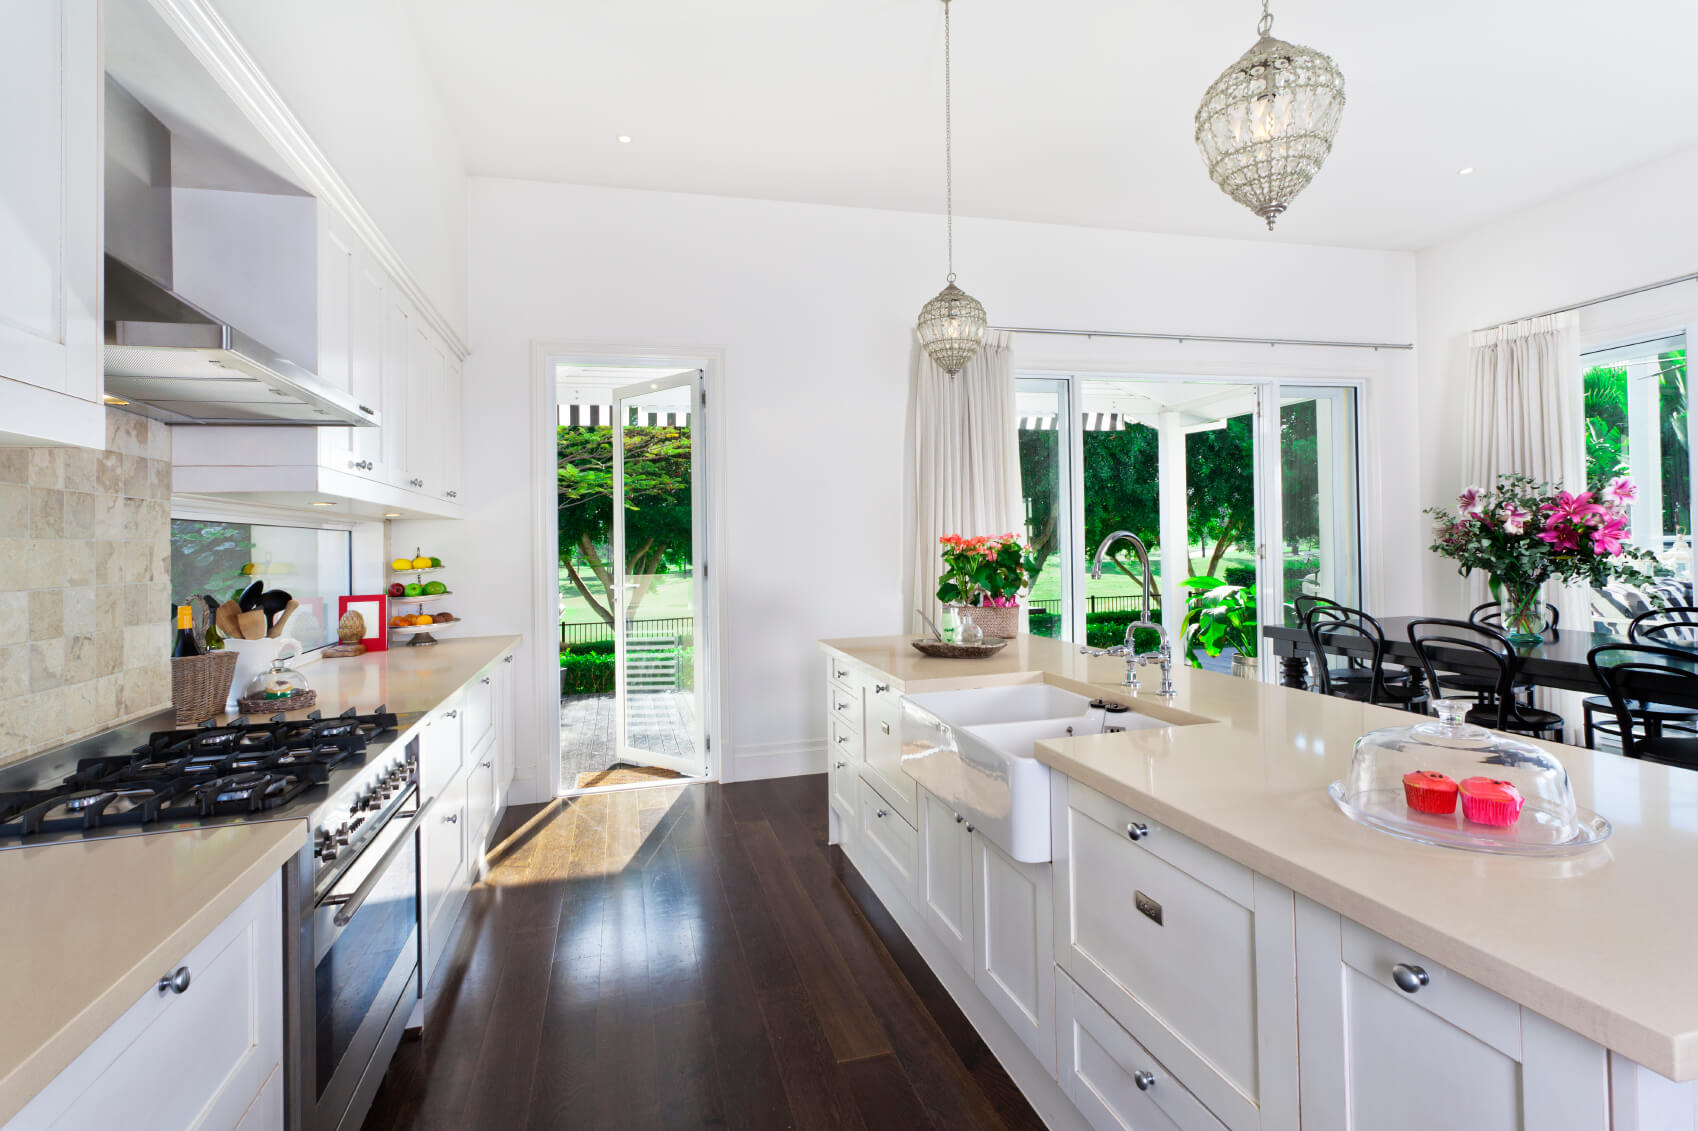 galley kitchen design ideas galley kitchen remodels Here s another example of a single line kitchen with island